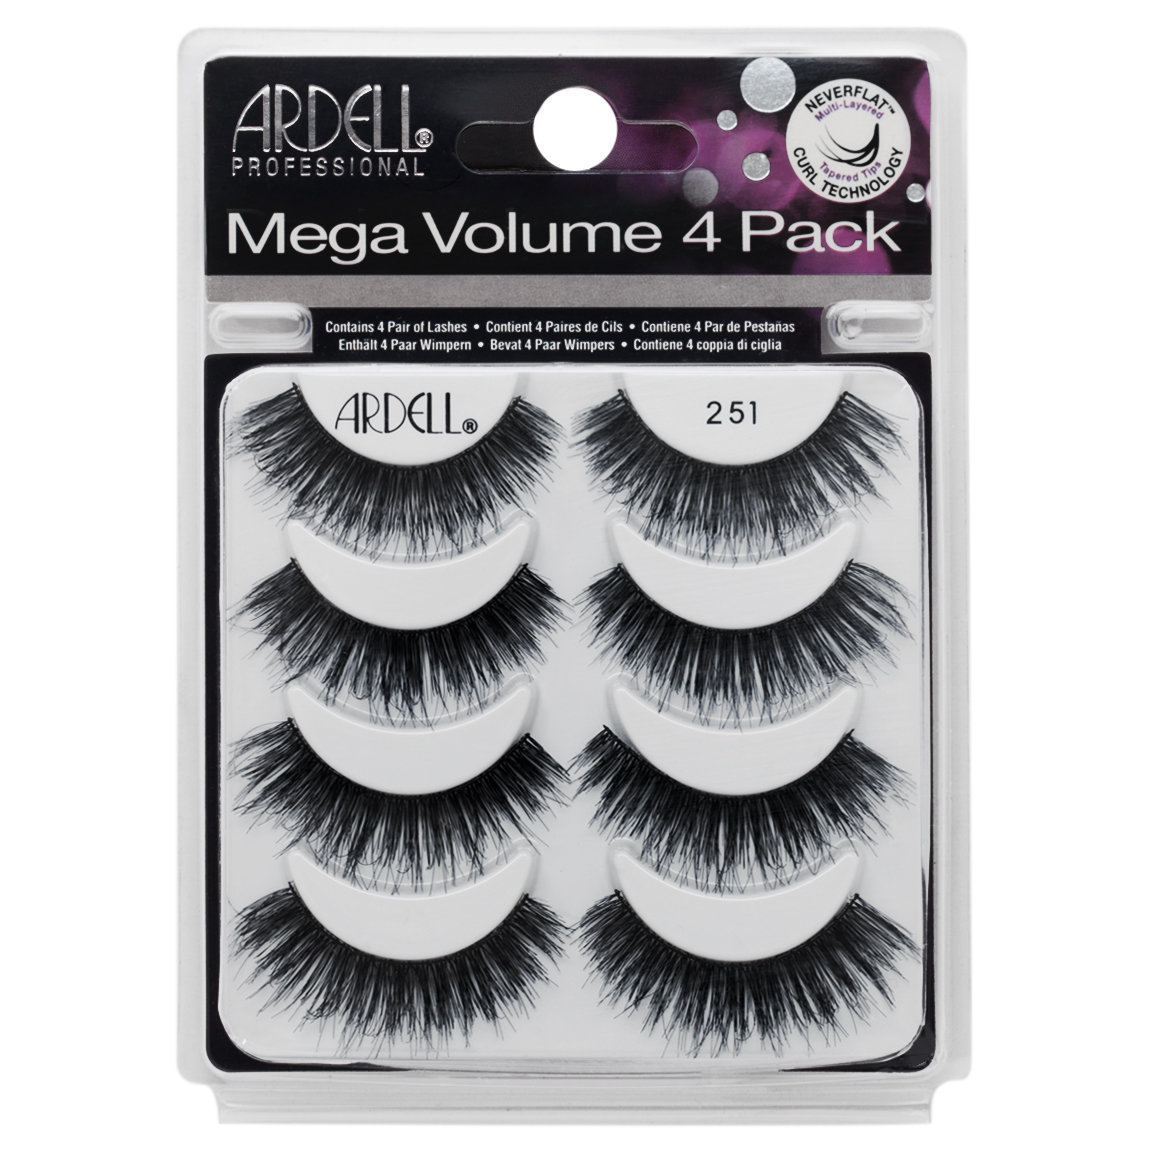 04db6f44a78 Ardell Mega Volume 4 Pack 251 product smear.